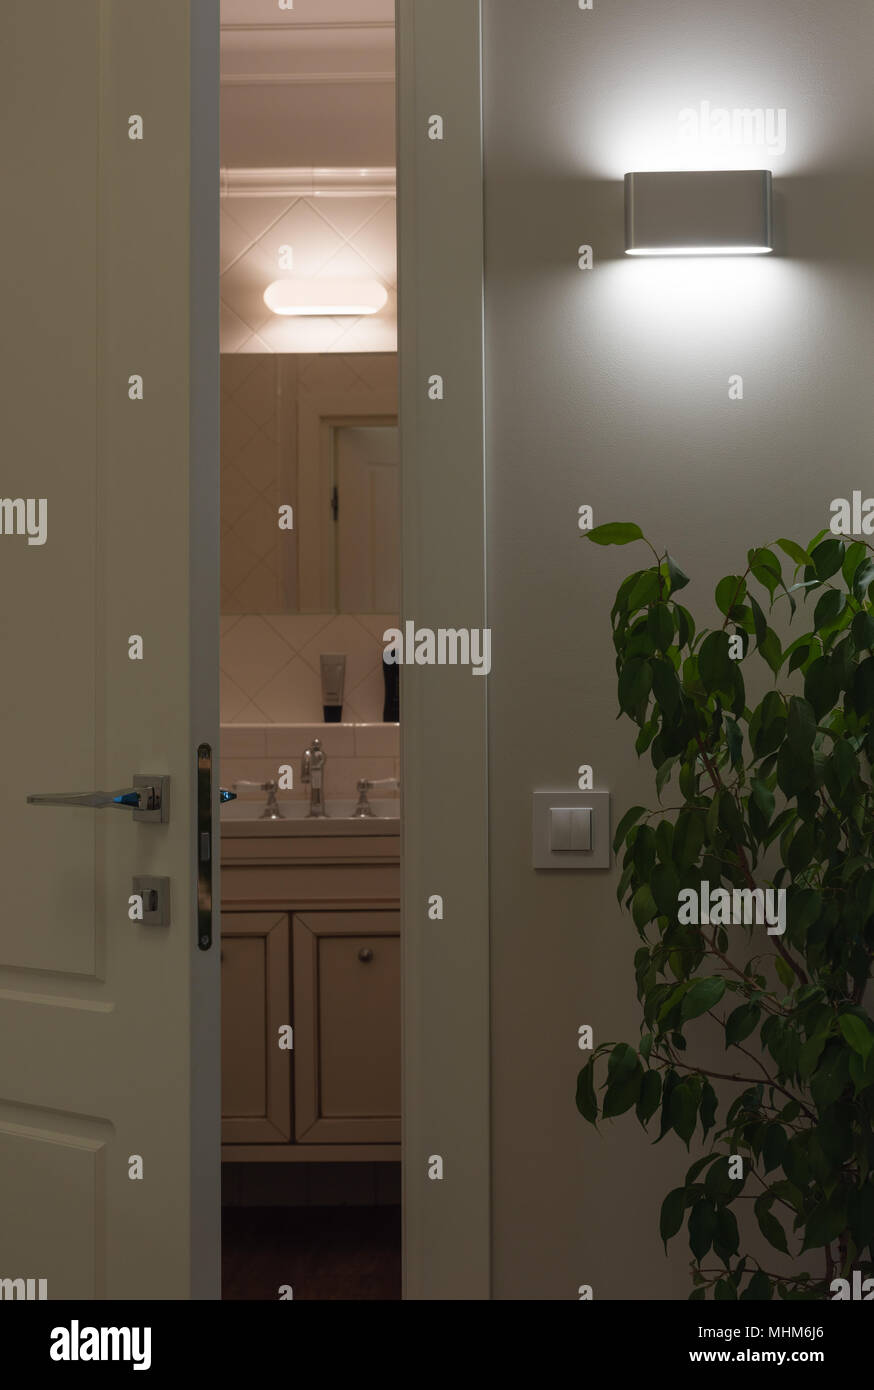 Wall LED lamps in the interior. Open white door to the bath. Comparison of led and halogen light - Stock Image